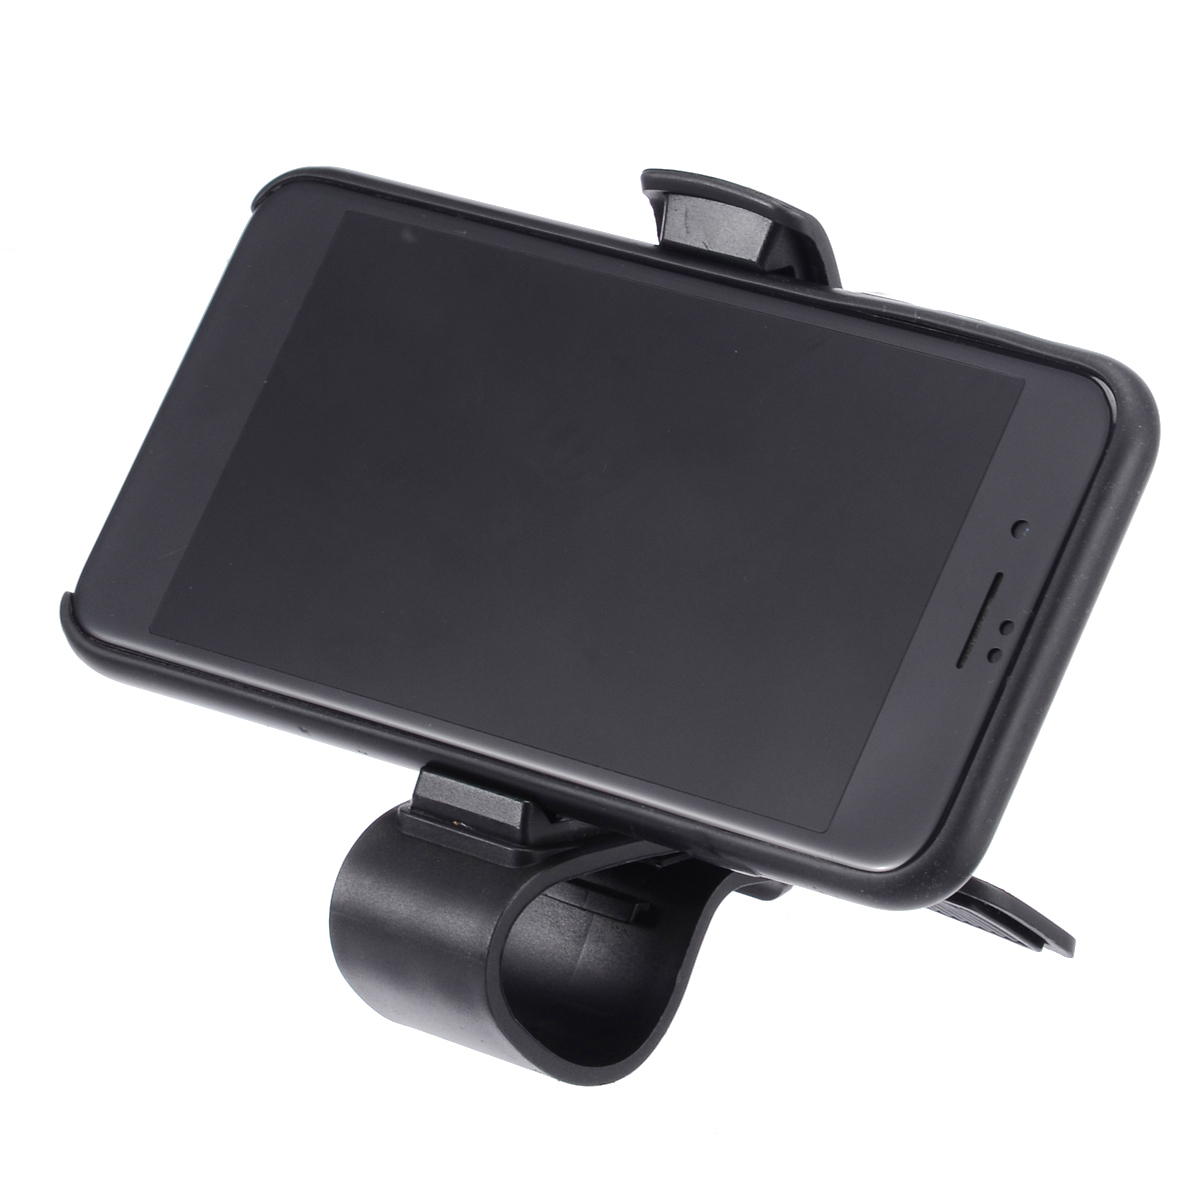 6.5inch Dashboard Car Phone Holder Easy Clip Mount Stand GPS Display Bracket Classic Black New